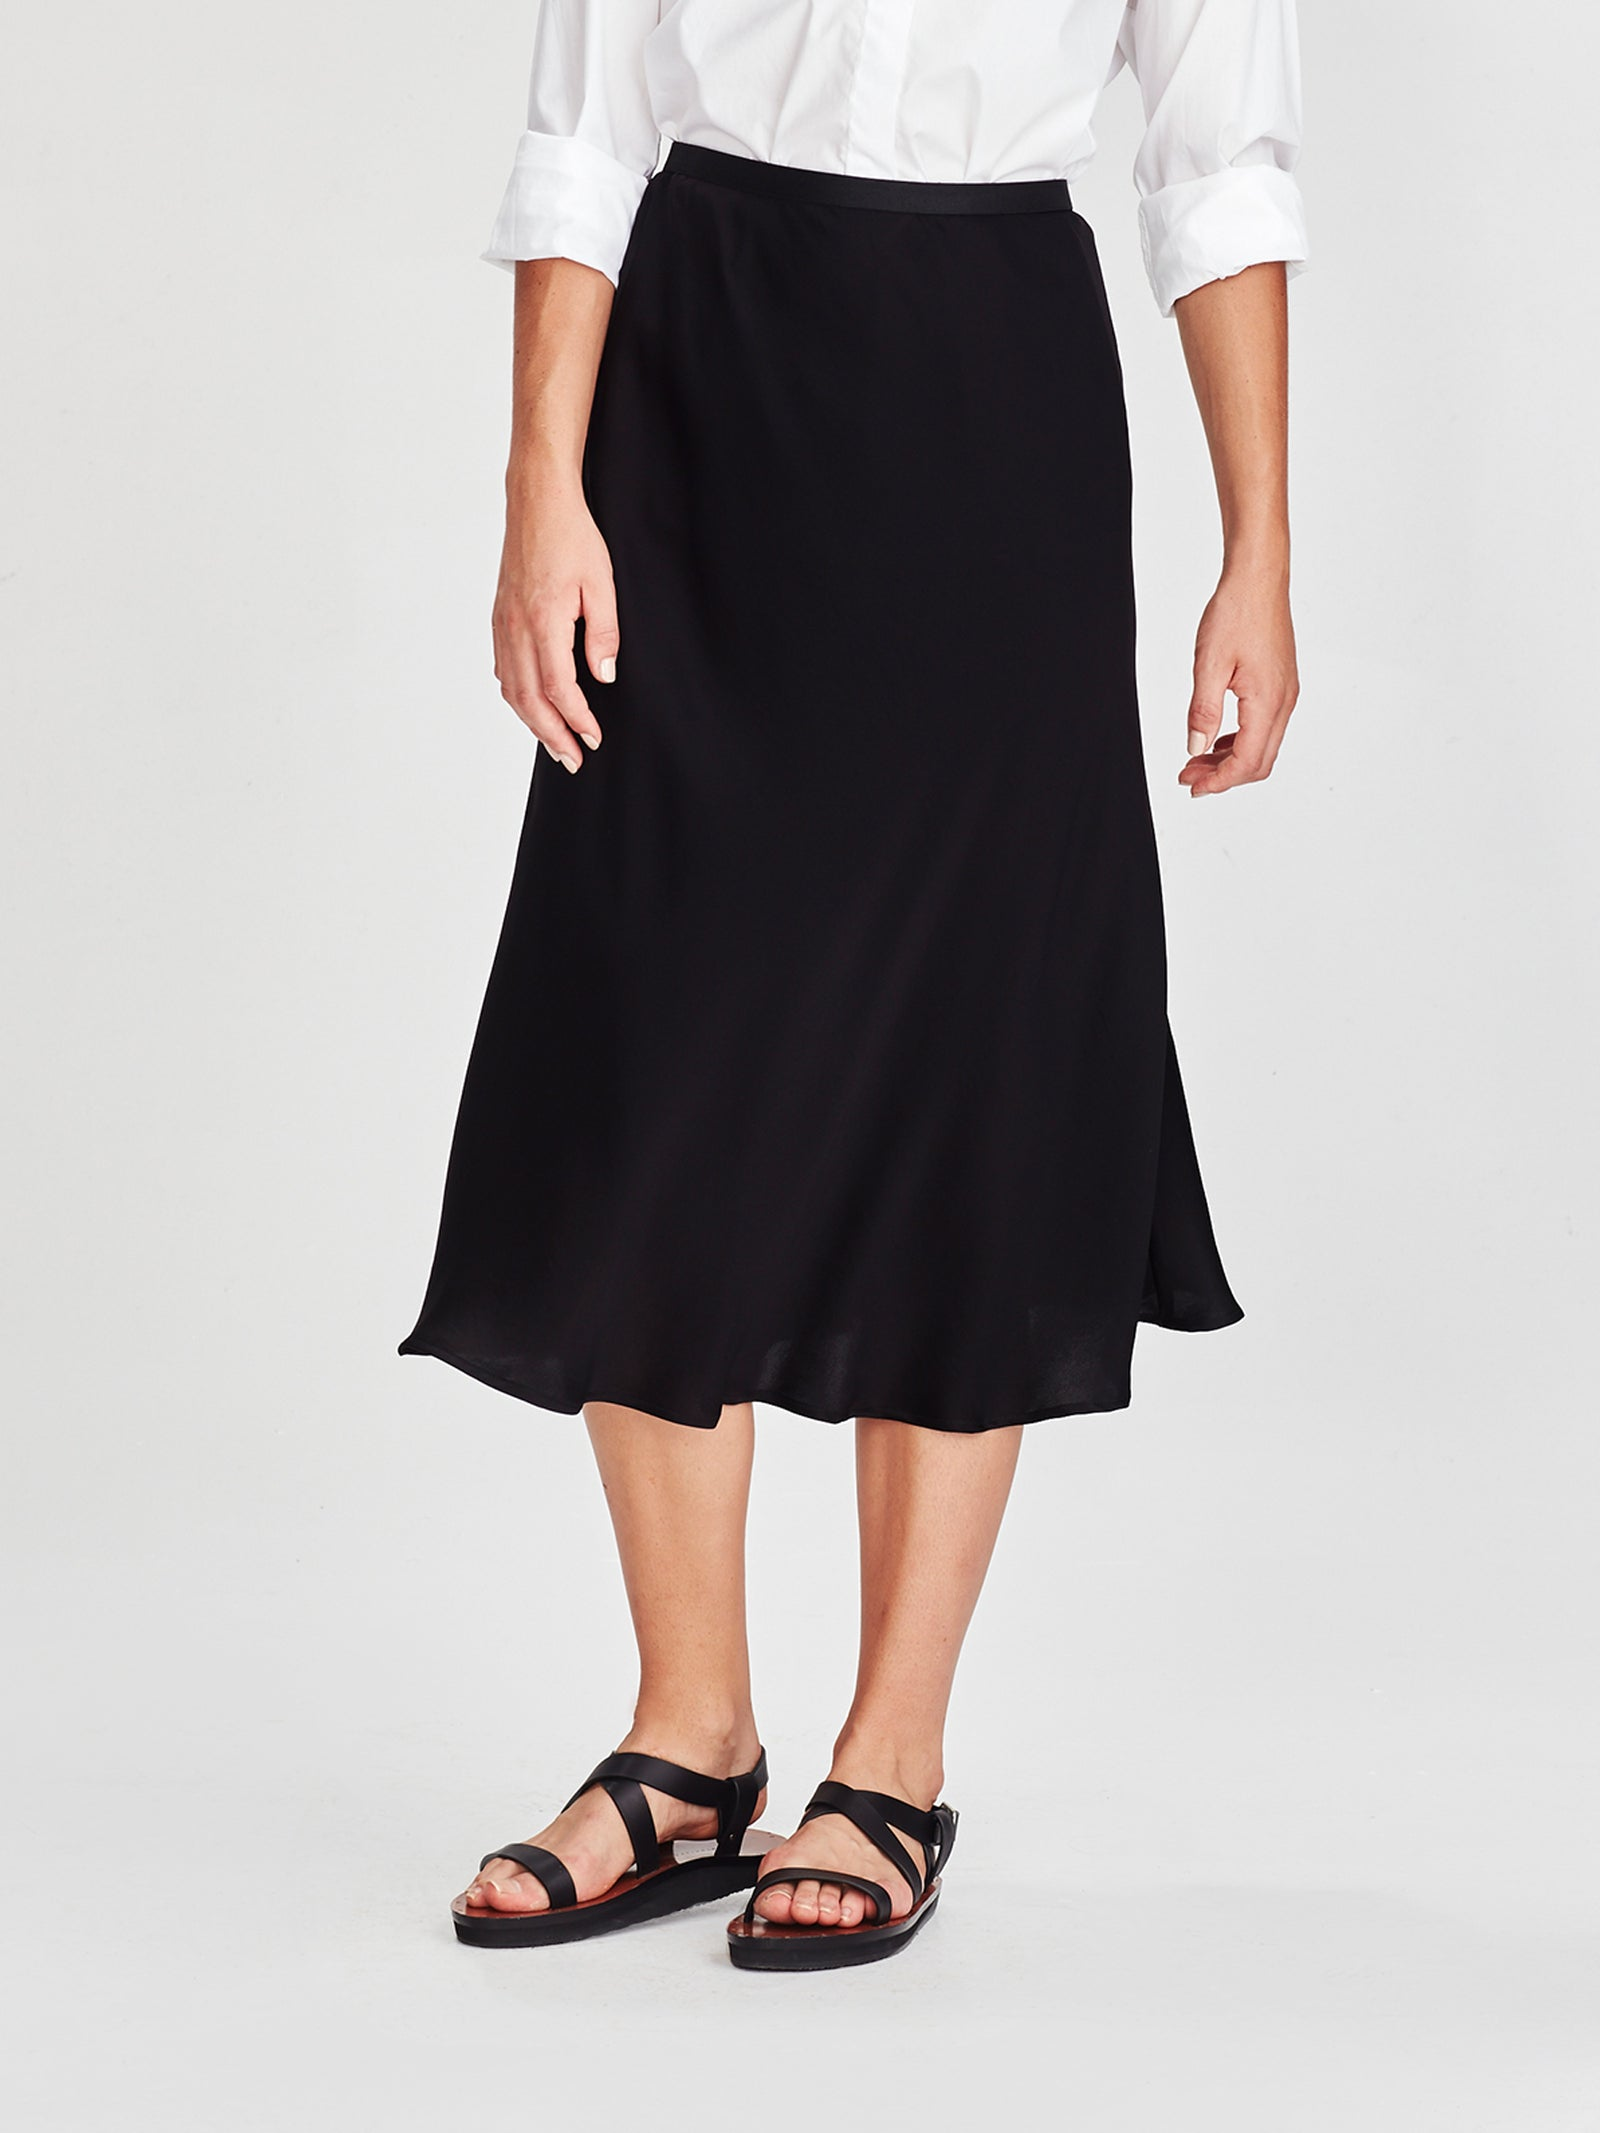 Sana Skirt (Satin Triacetate) Black